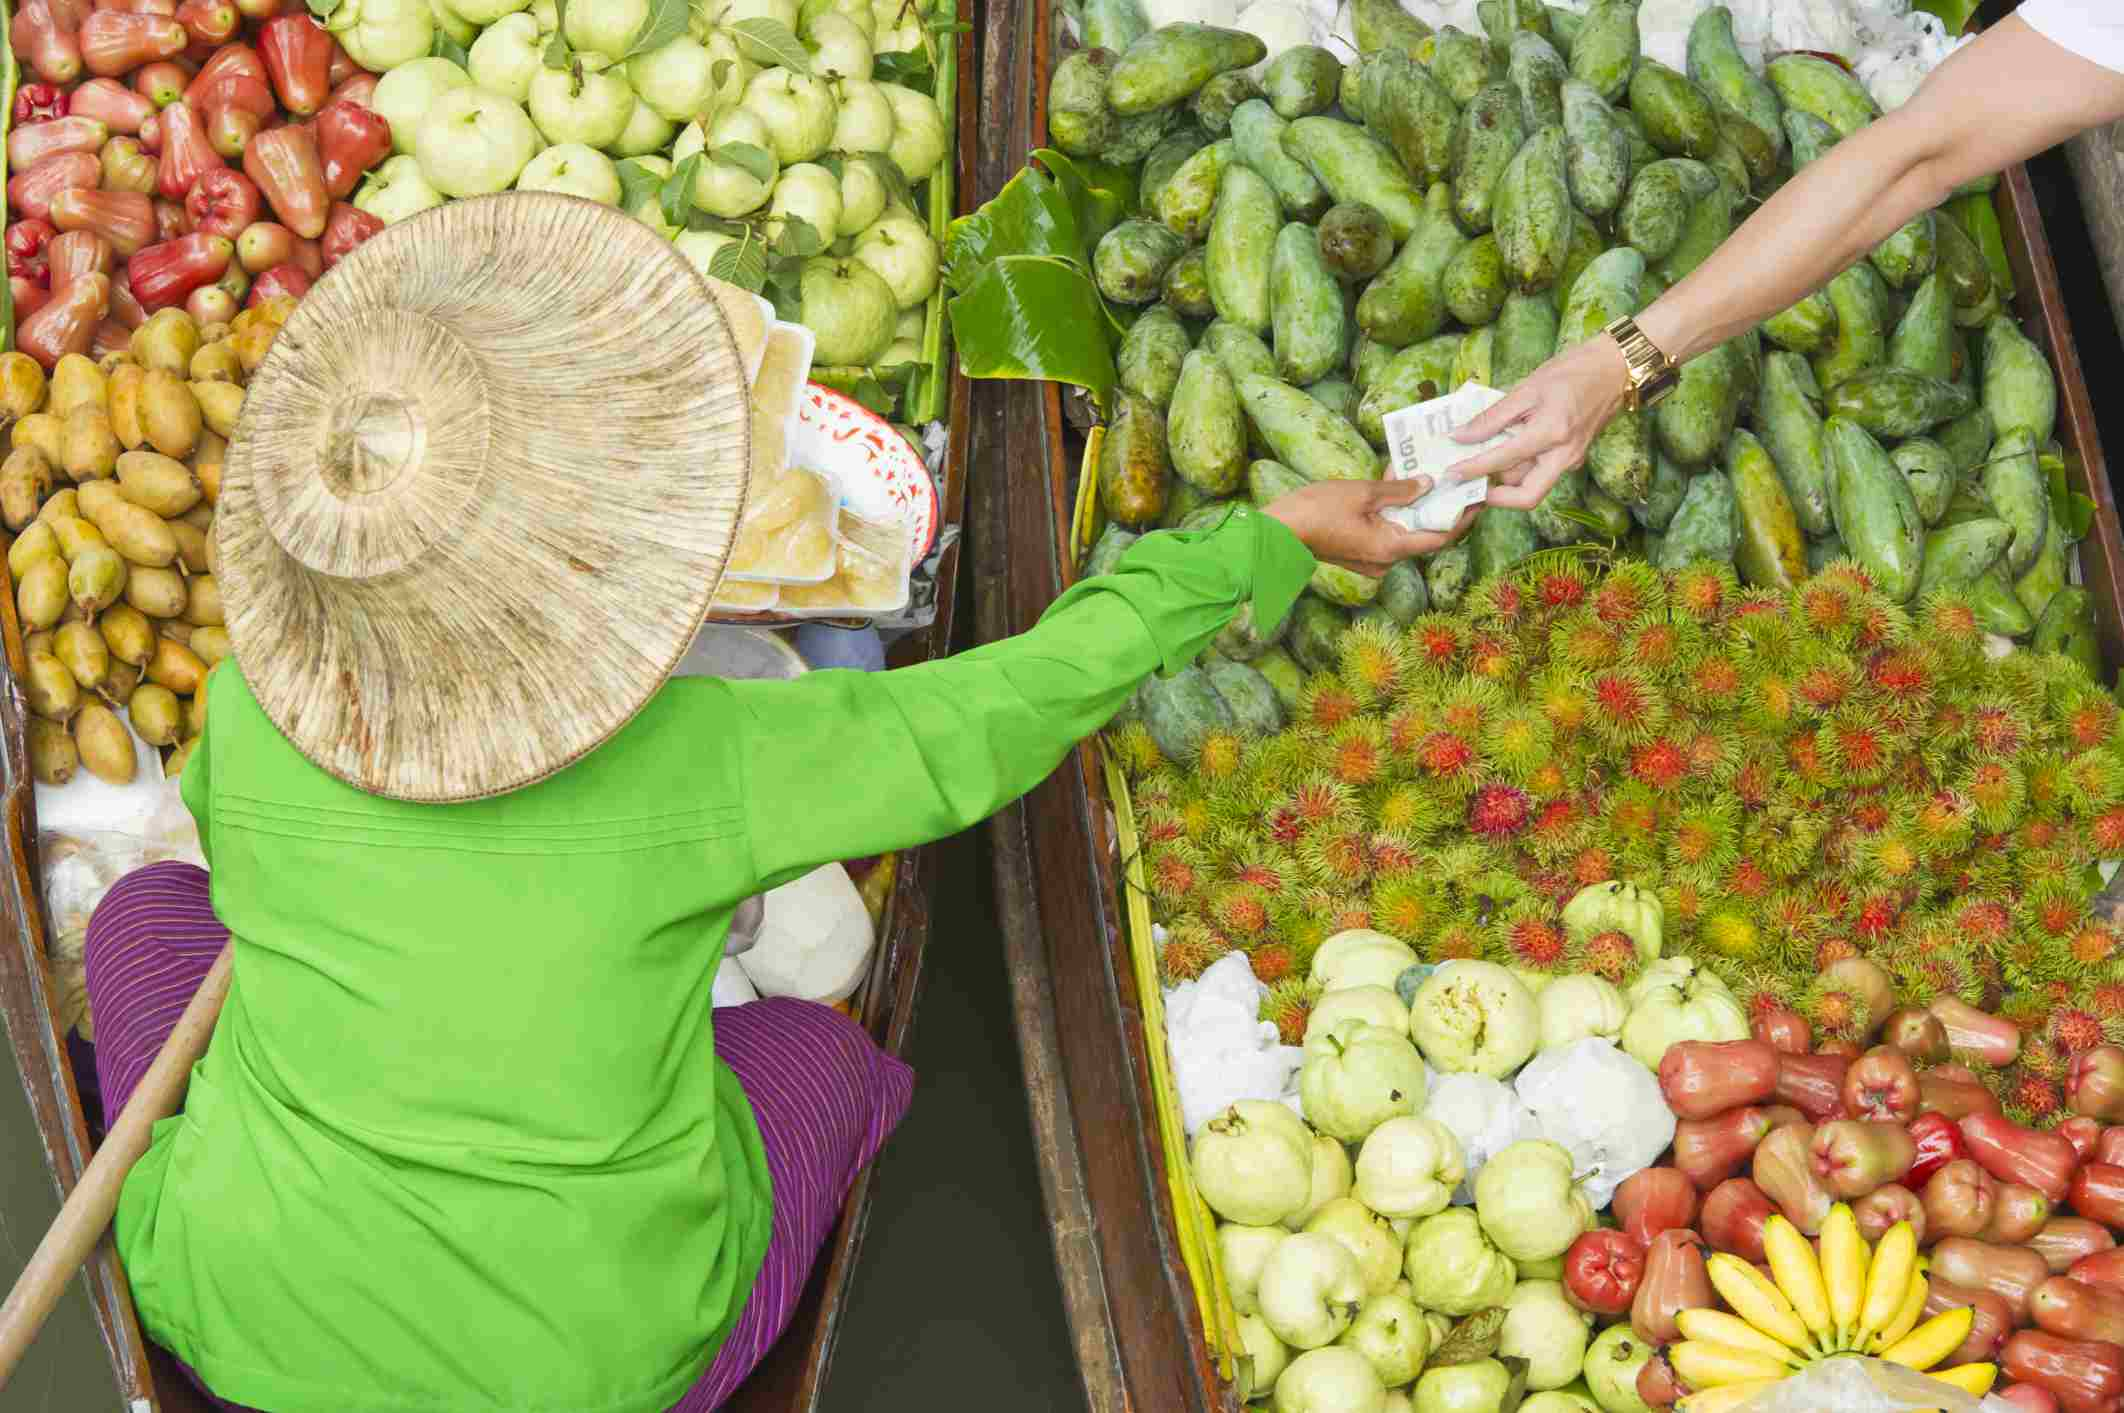 woman trading fruits for money